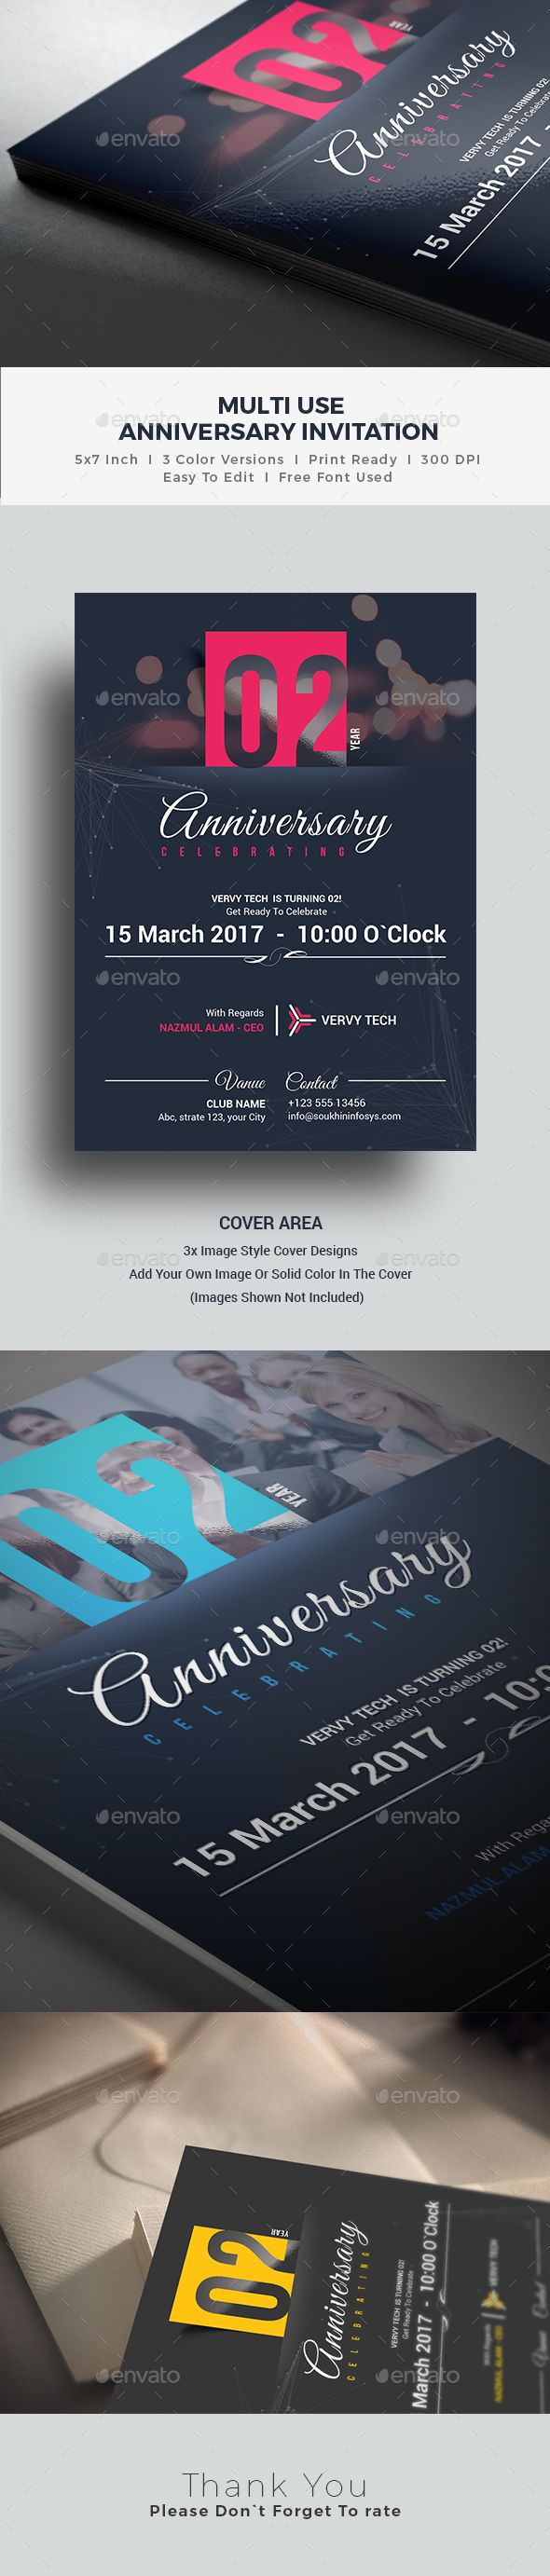 7 best classy corporate invites images on pinterest corporate anniversary invitation stopboris Images